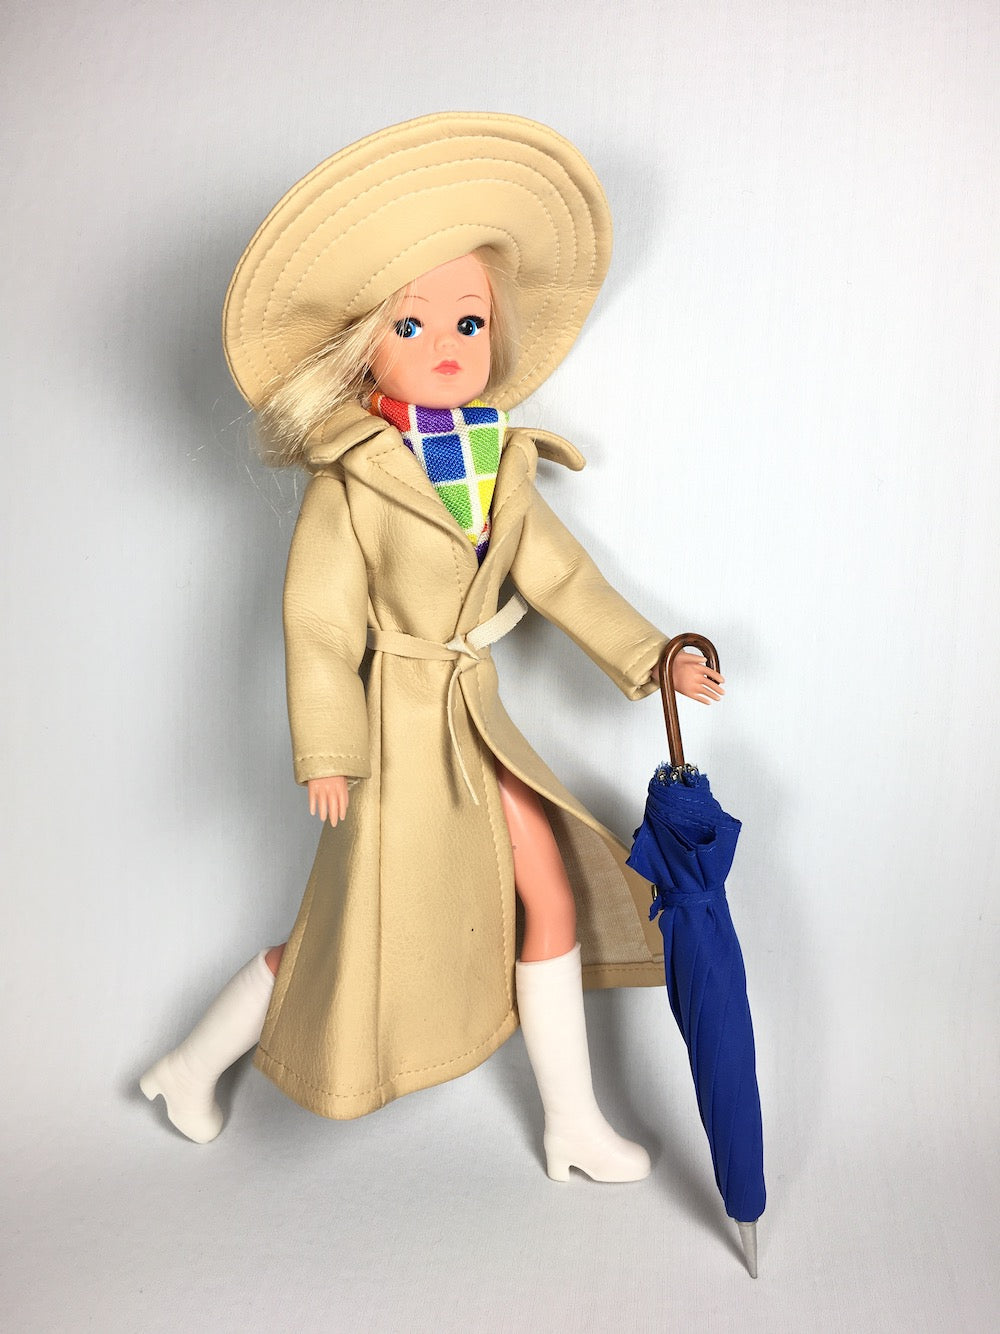 Sindy wearing Summer Showers 1976, with a blue umbrella prop